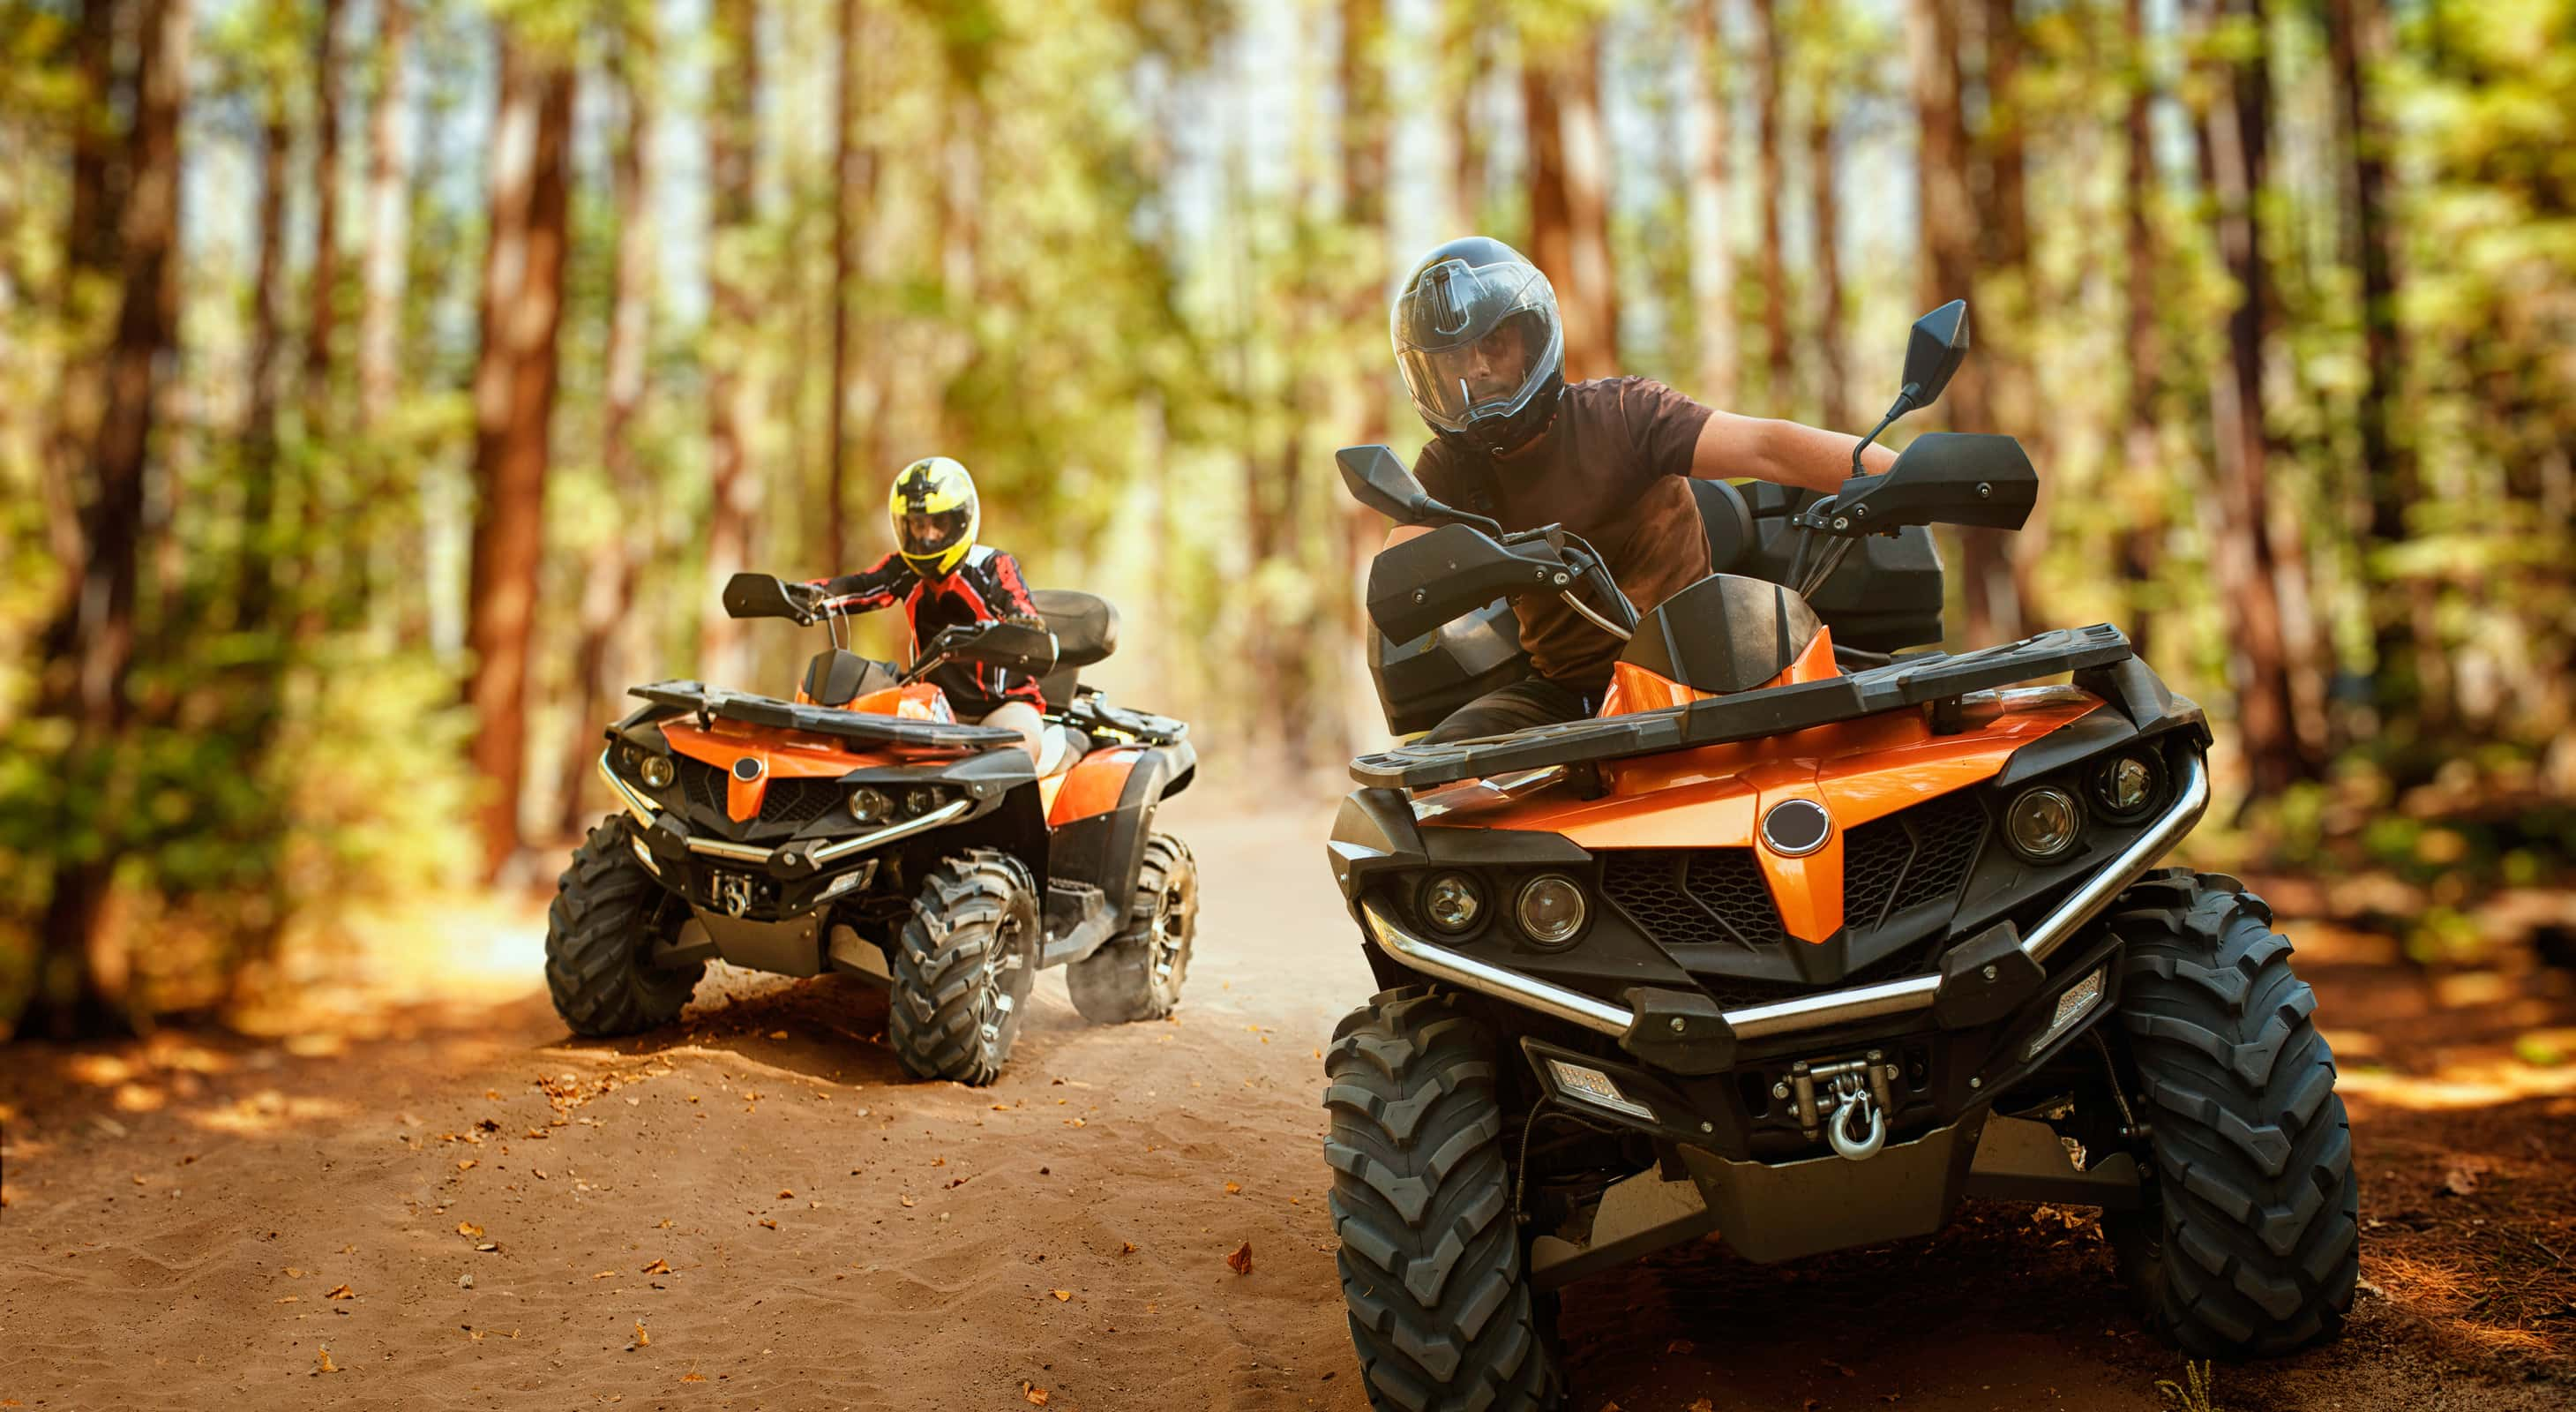 Two people riding ATVs on a trail in the woods